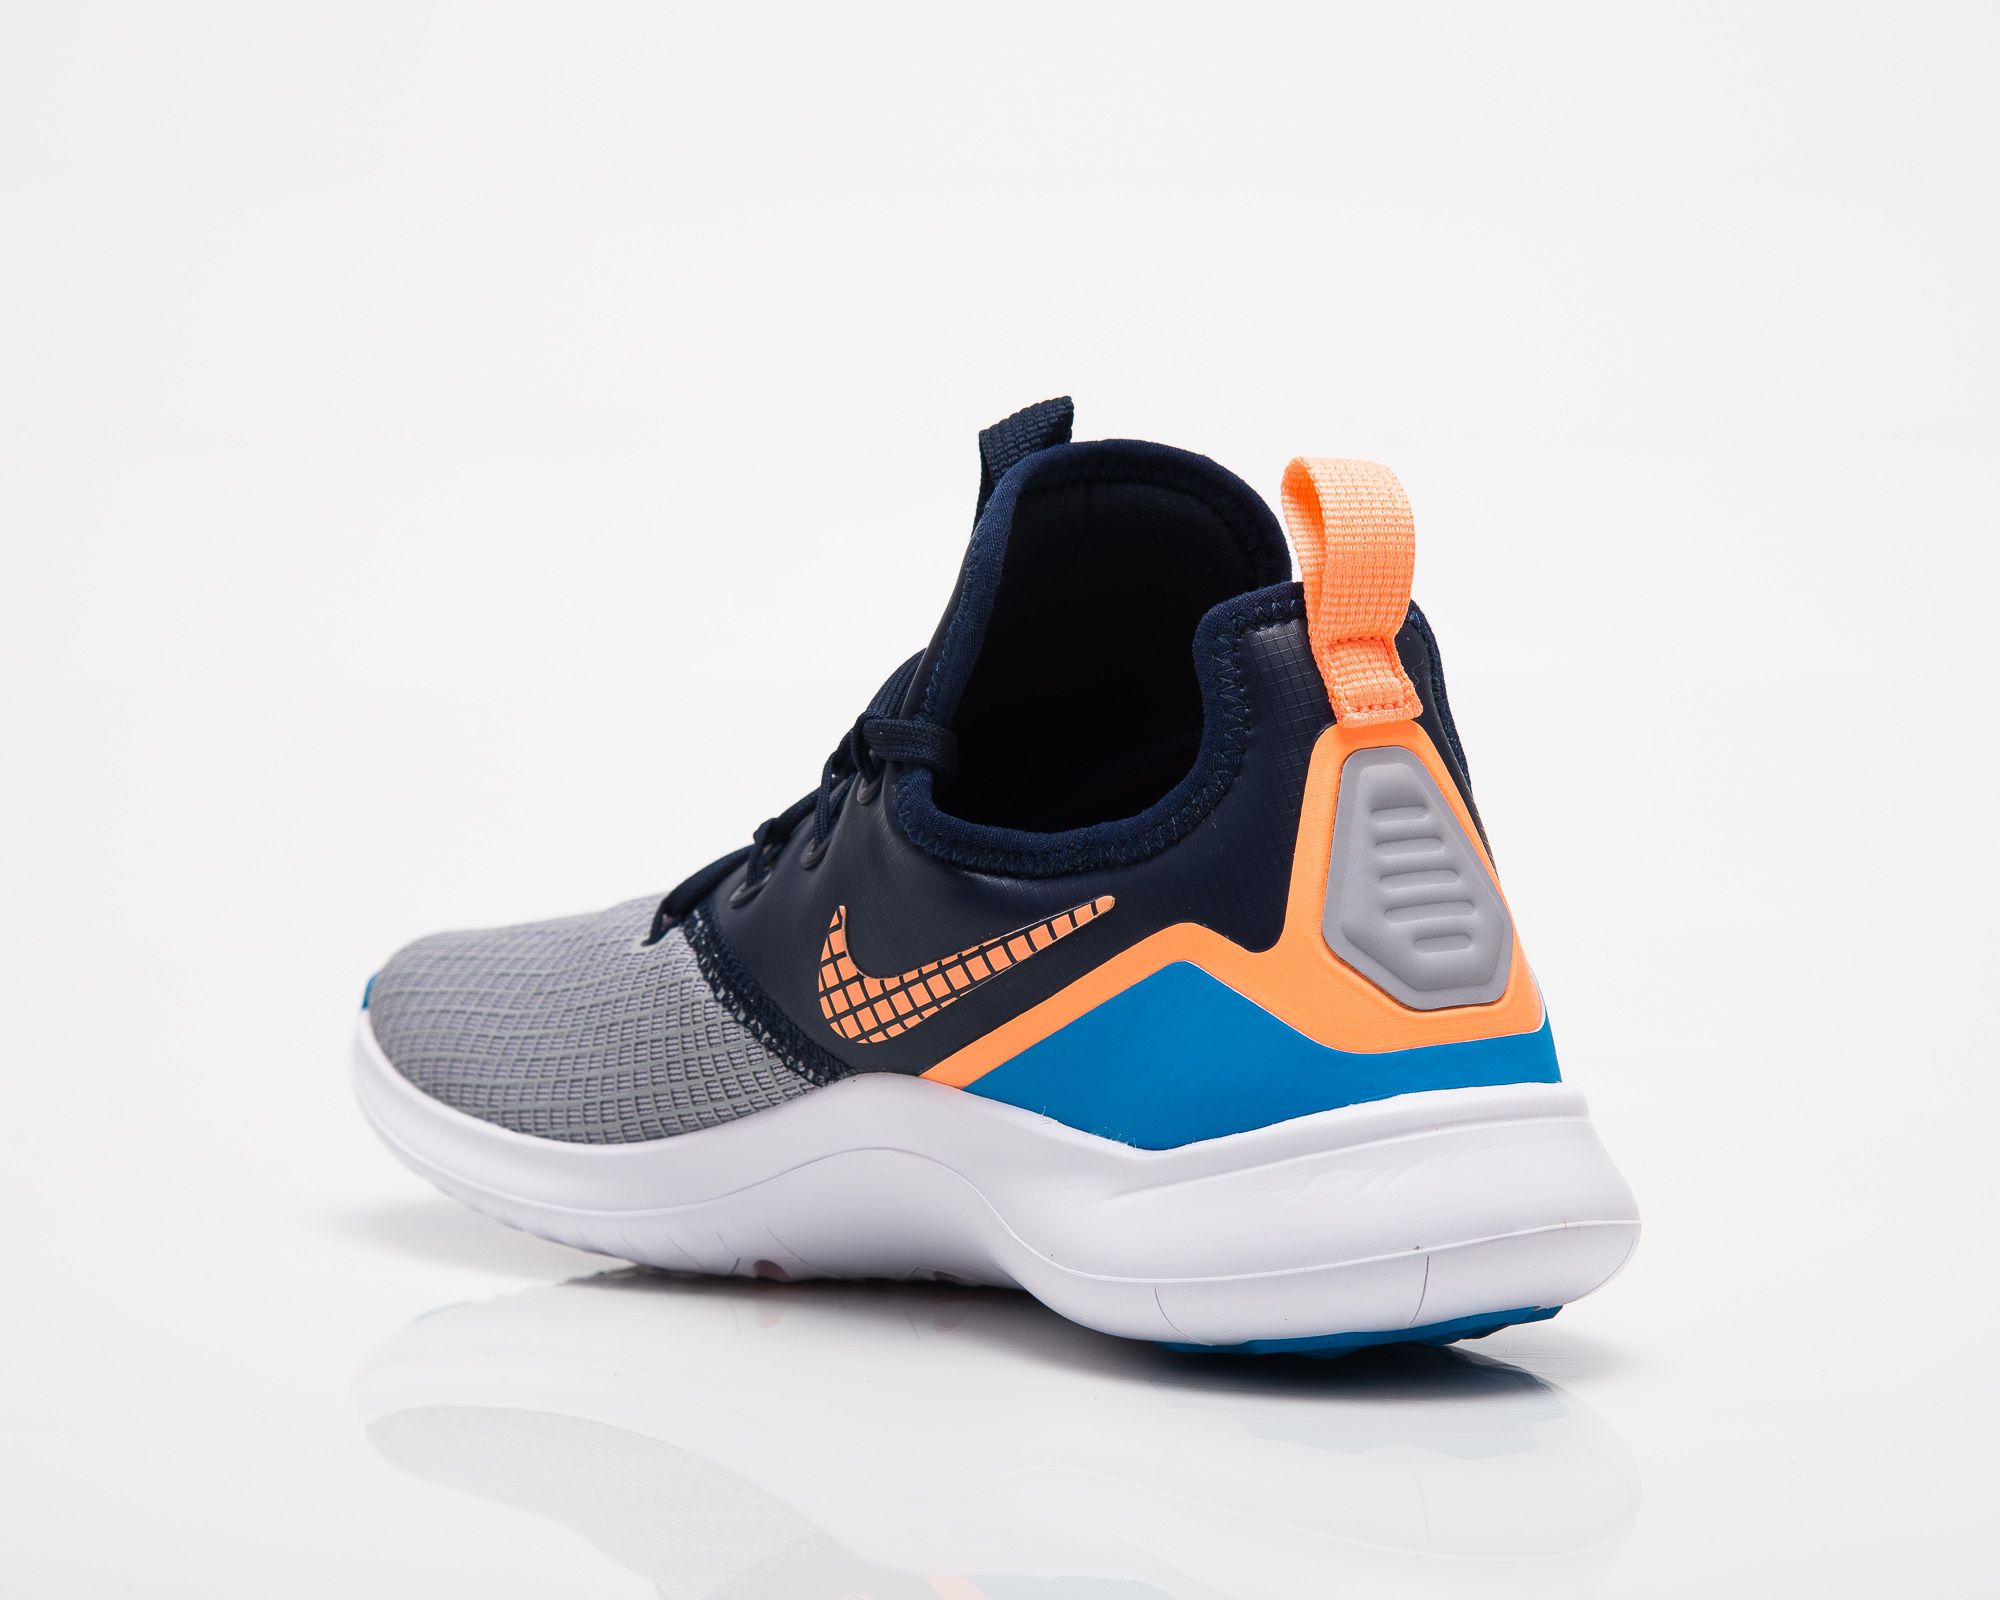 info for 318ad de2c0 Nike Wmns Free TR 8 Neo